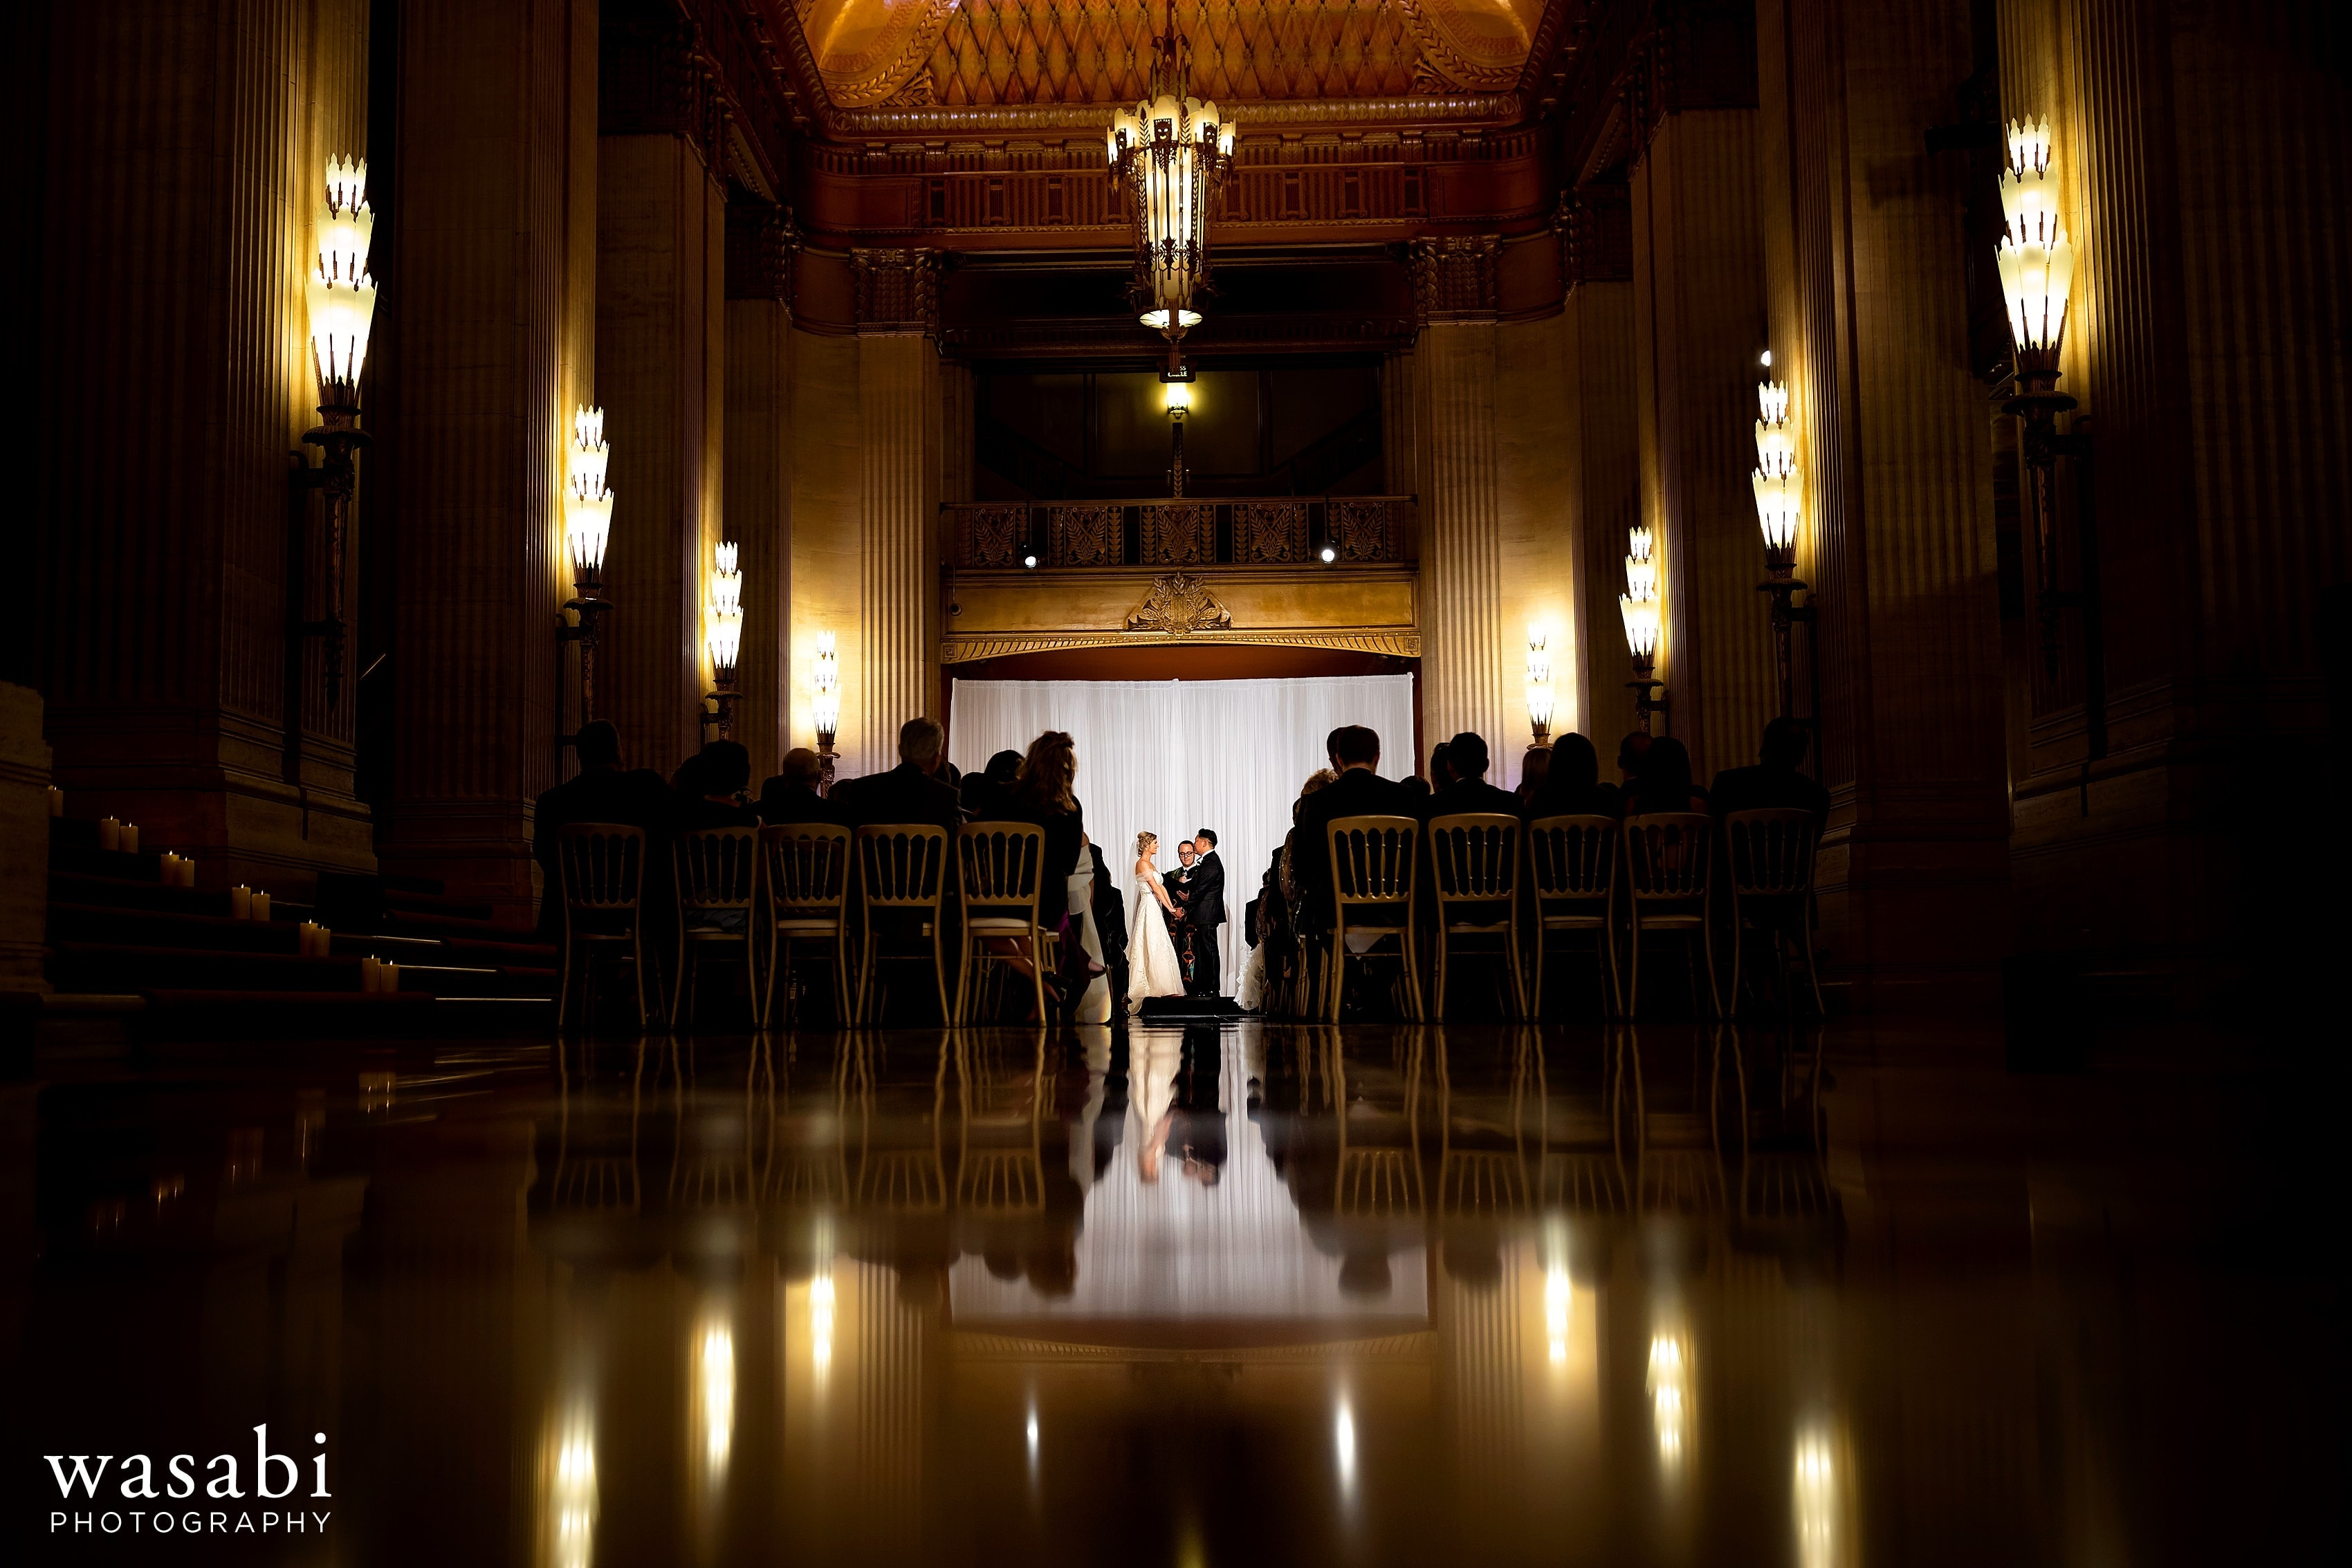 wide angle view with reflection showing the ceiling of Civic Opera House wedding ceremony showing the entire grand lobby